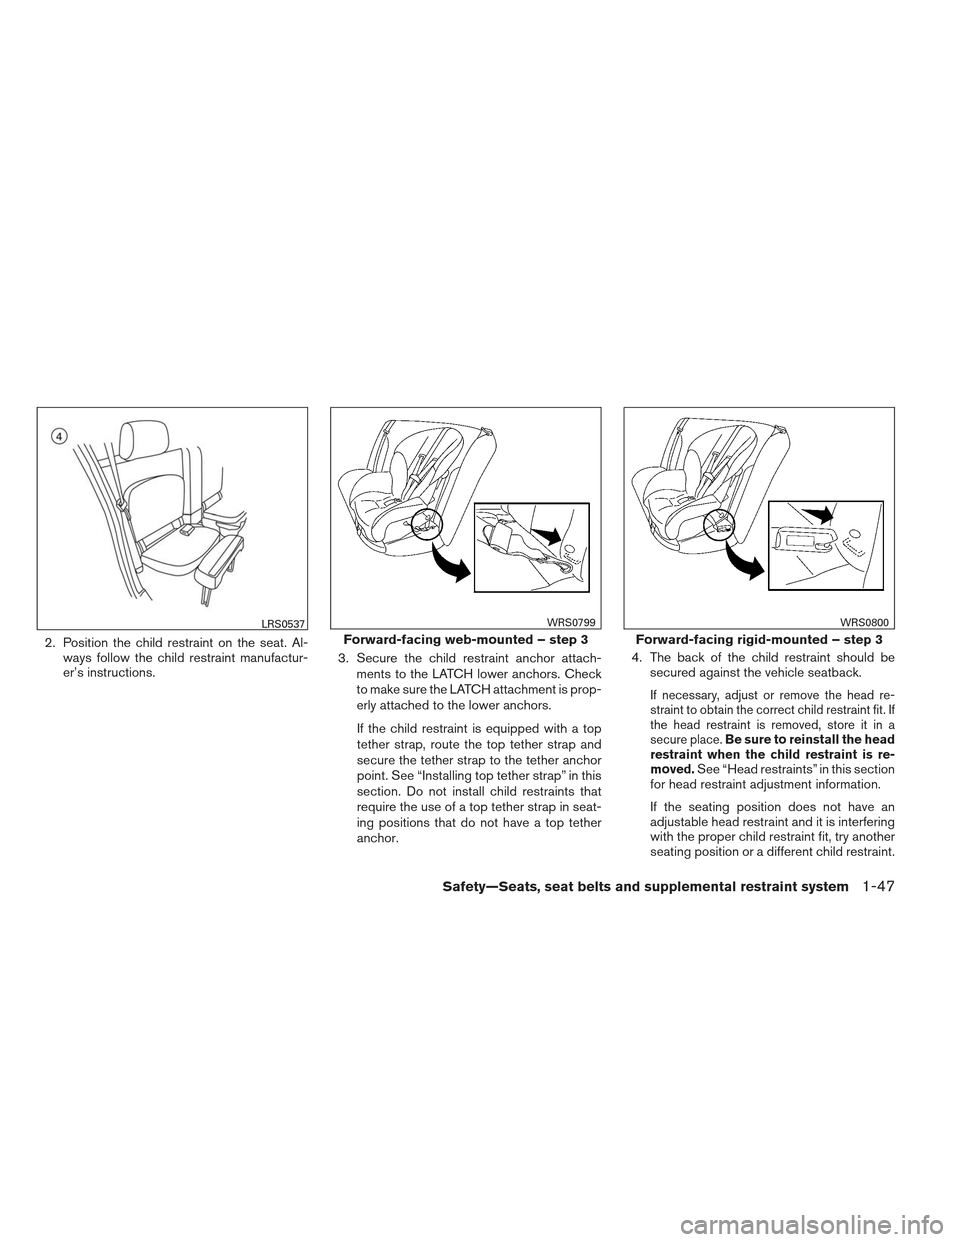 NISSAN FRONTIER 2013 D40 / 2.G Repair Manual 2. Position the child restraint on the seat. Al-ways follow the child restraint manufactur- er's instructions. 3. Secure the child restraint anchor attach- ments to the LATCH lower anchors. Check to